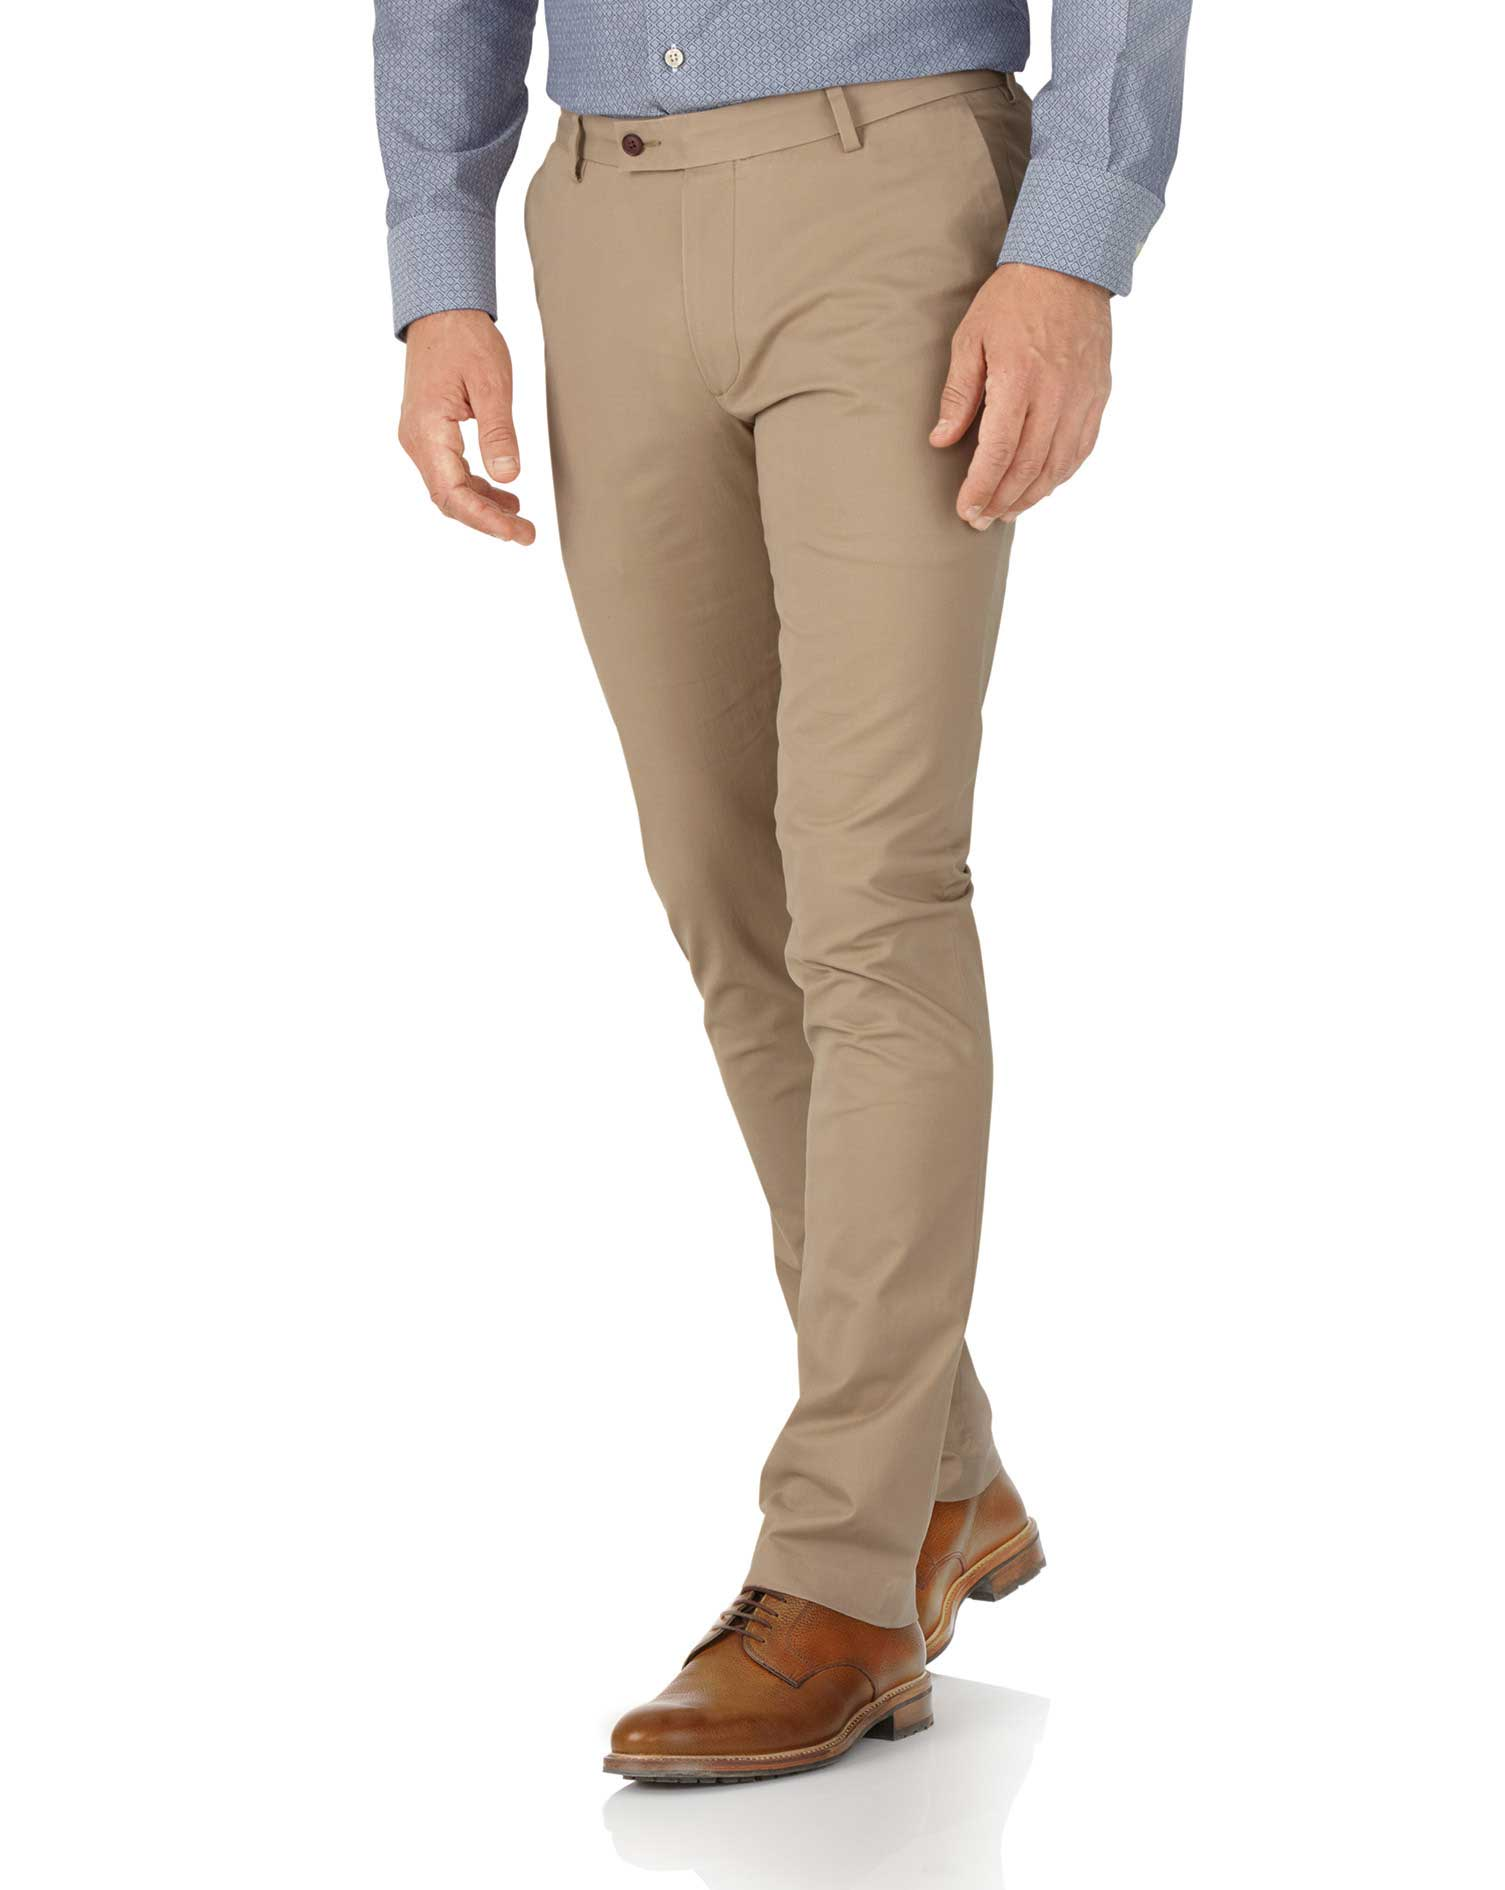 Tan Extra Slim Fit Stretch Cotton Chino Trousers Size W32 L32 by Charles Tyrwhitt